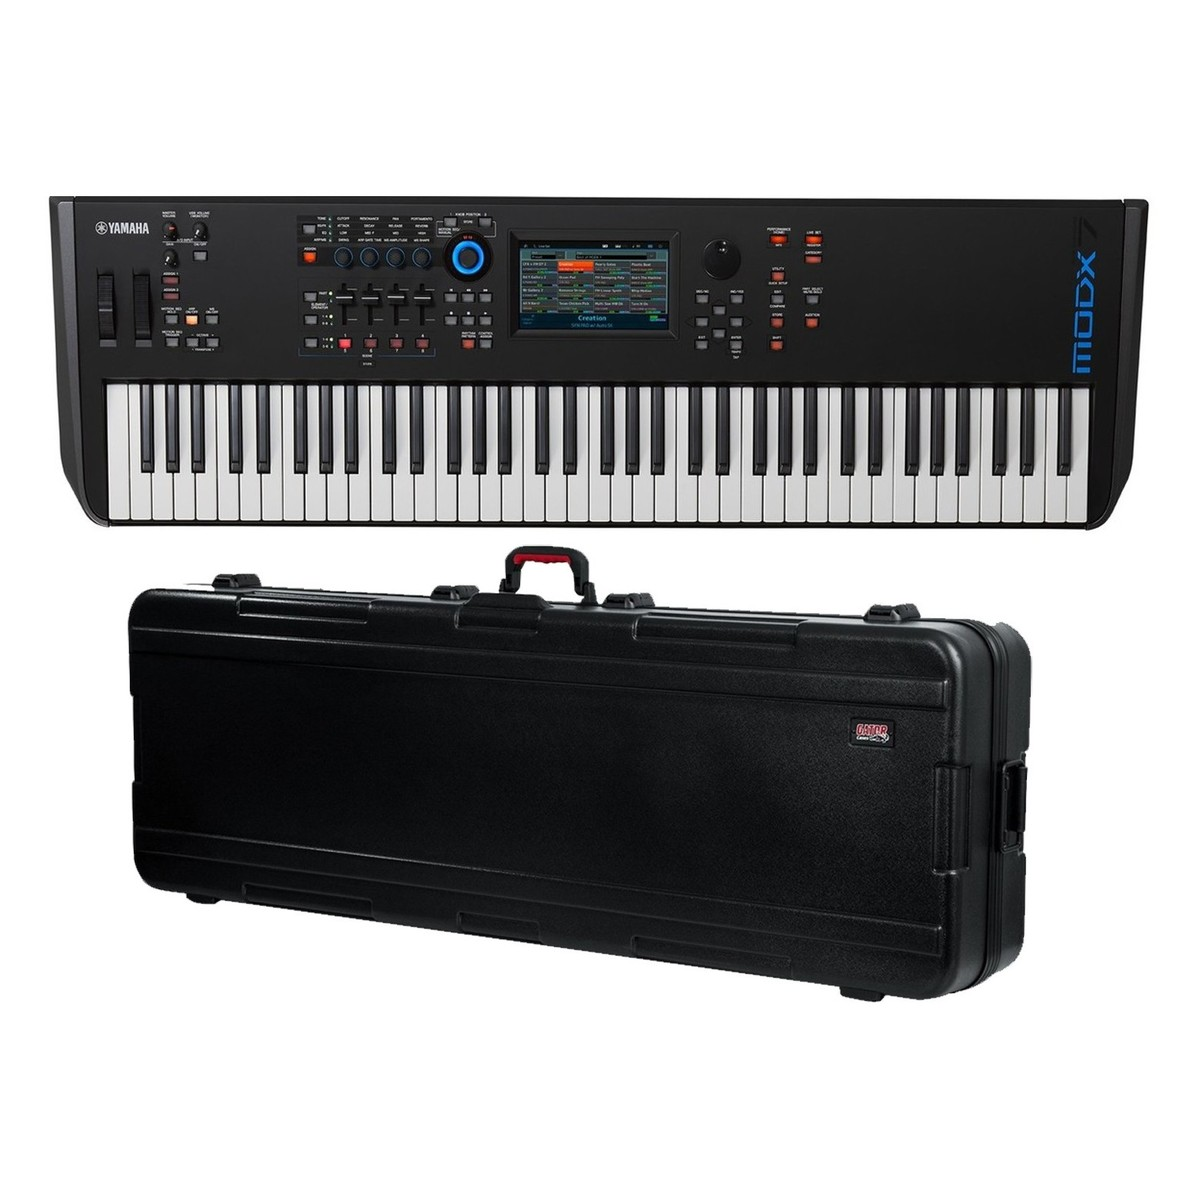 yamaha modx7 synthesizer keyboard with gator hard case at gear4music. Black Bedroom Furniture Sets. Home Design Ideas